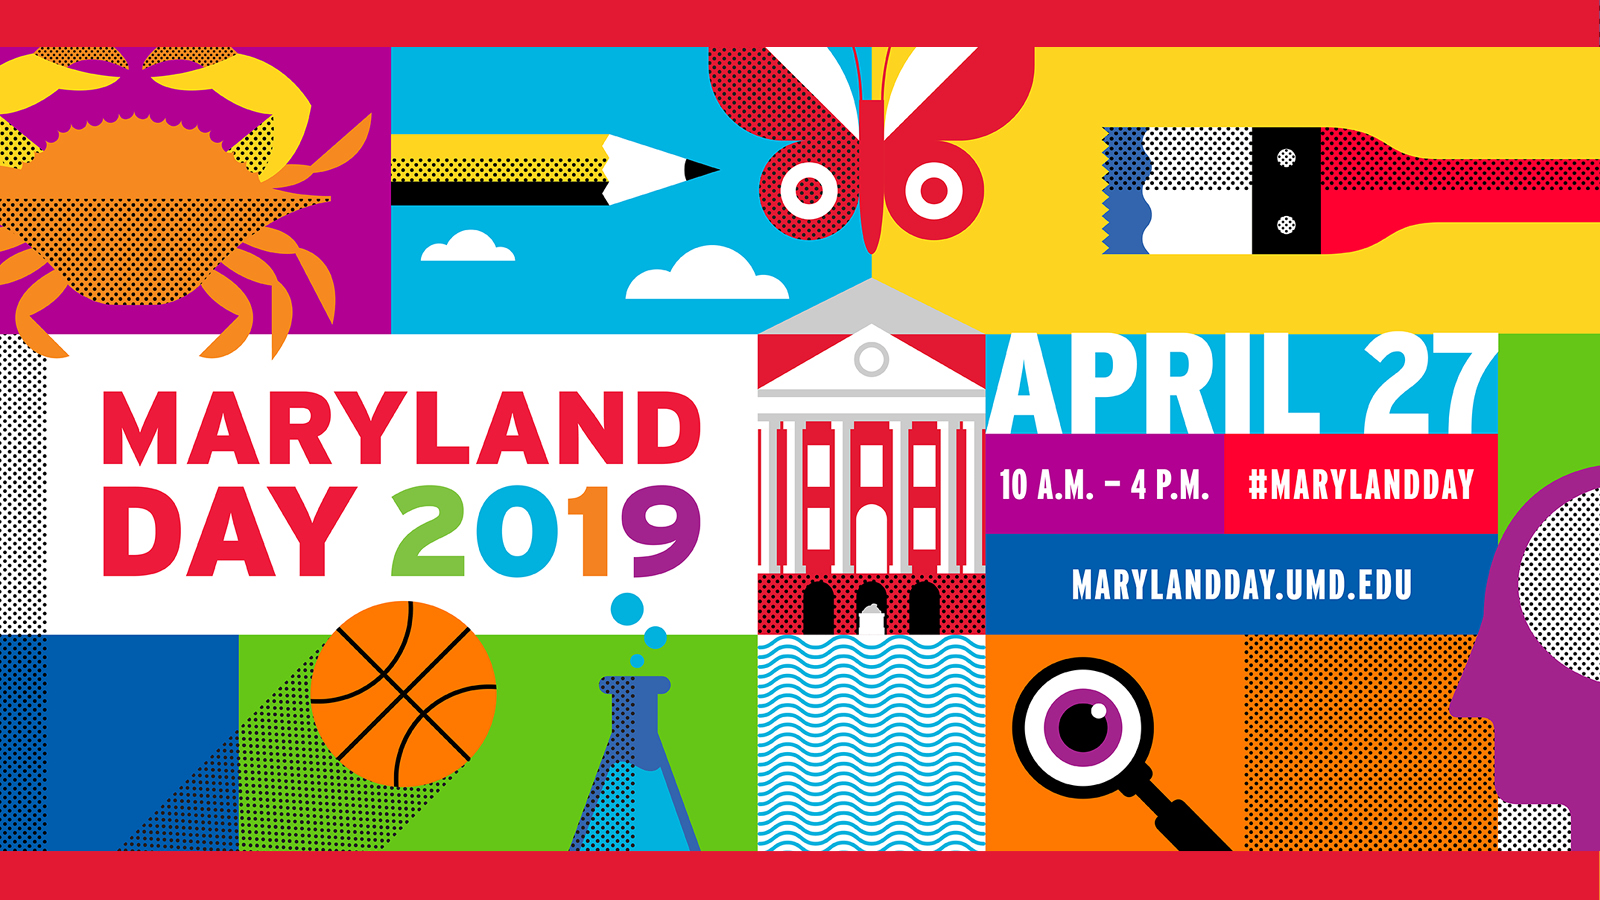 colorful illustrations surrounding Maryland Day event information